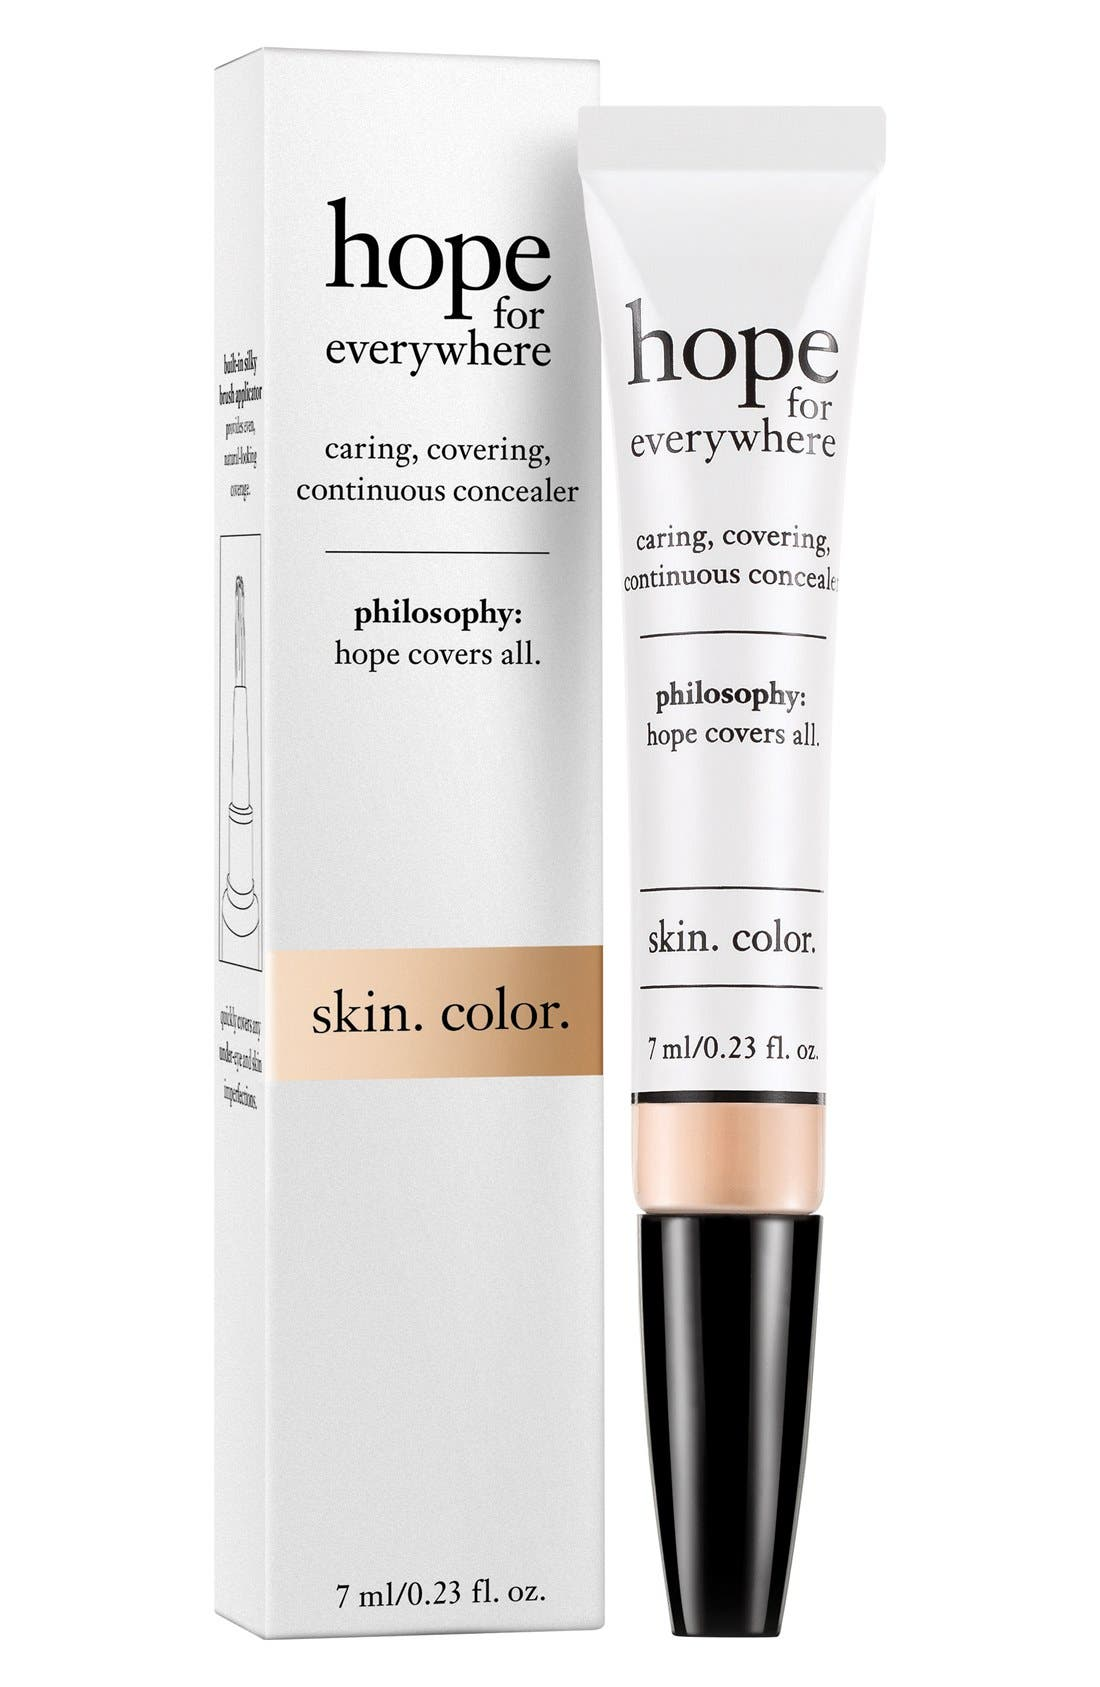 philosophy 'hope for everywhere' concealer